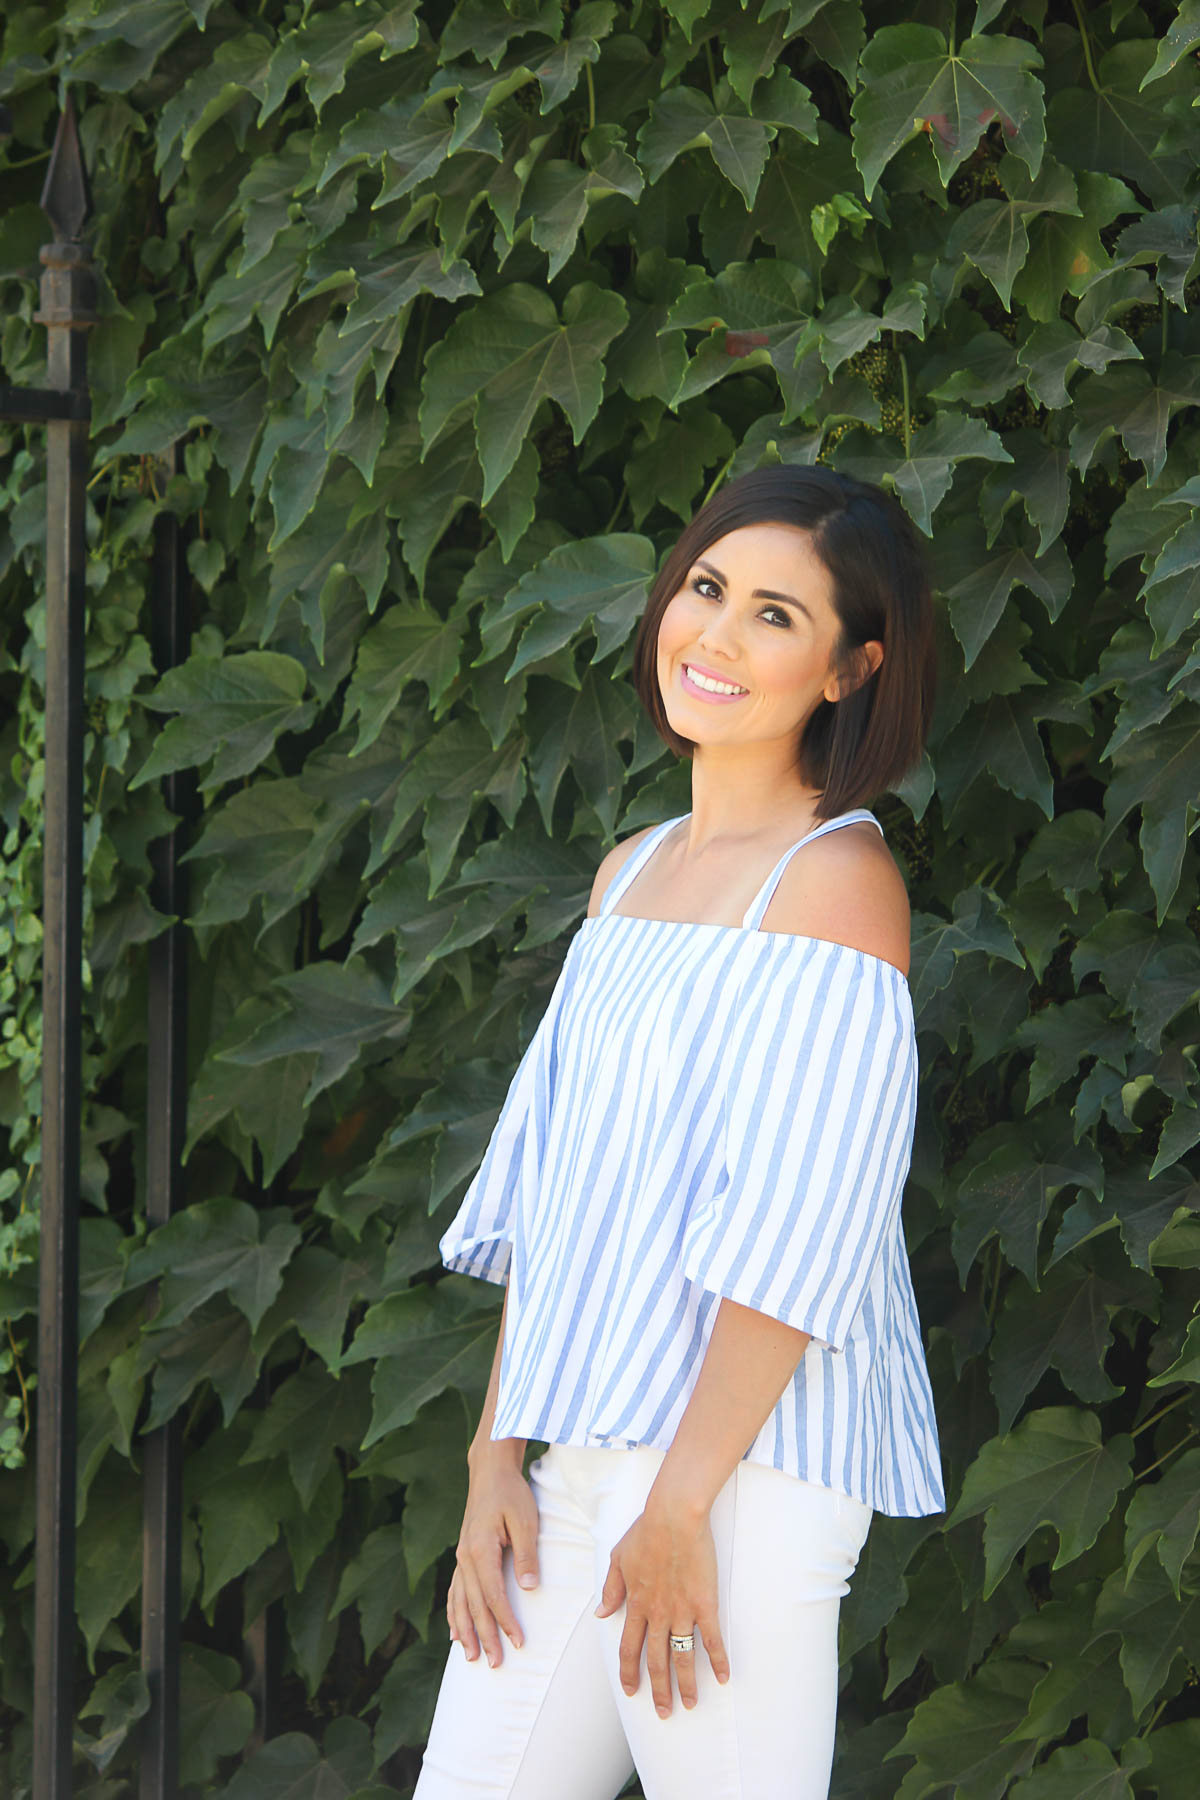 @cristencasados's cover photo for 'Cold-Shoulder Summer Style'